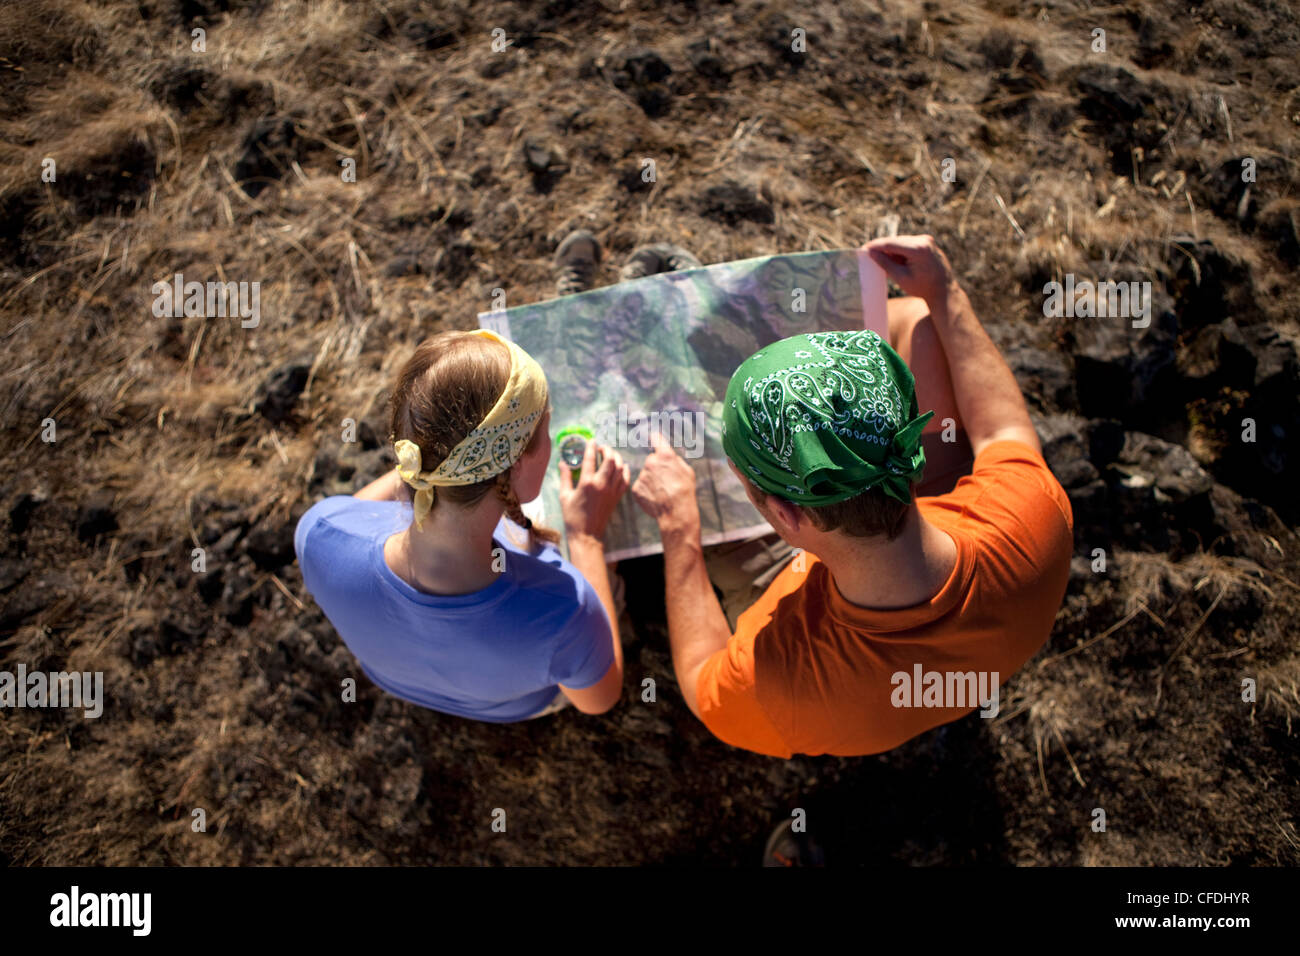 Couple using a map while out backpacking. - Stock Image